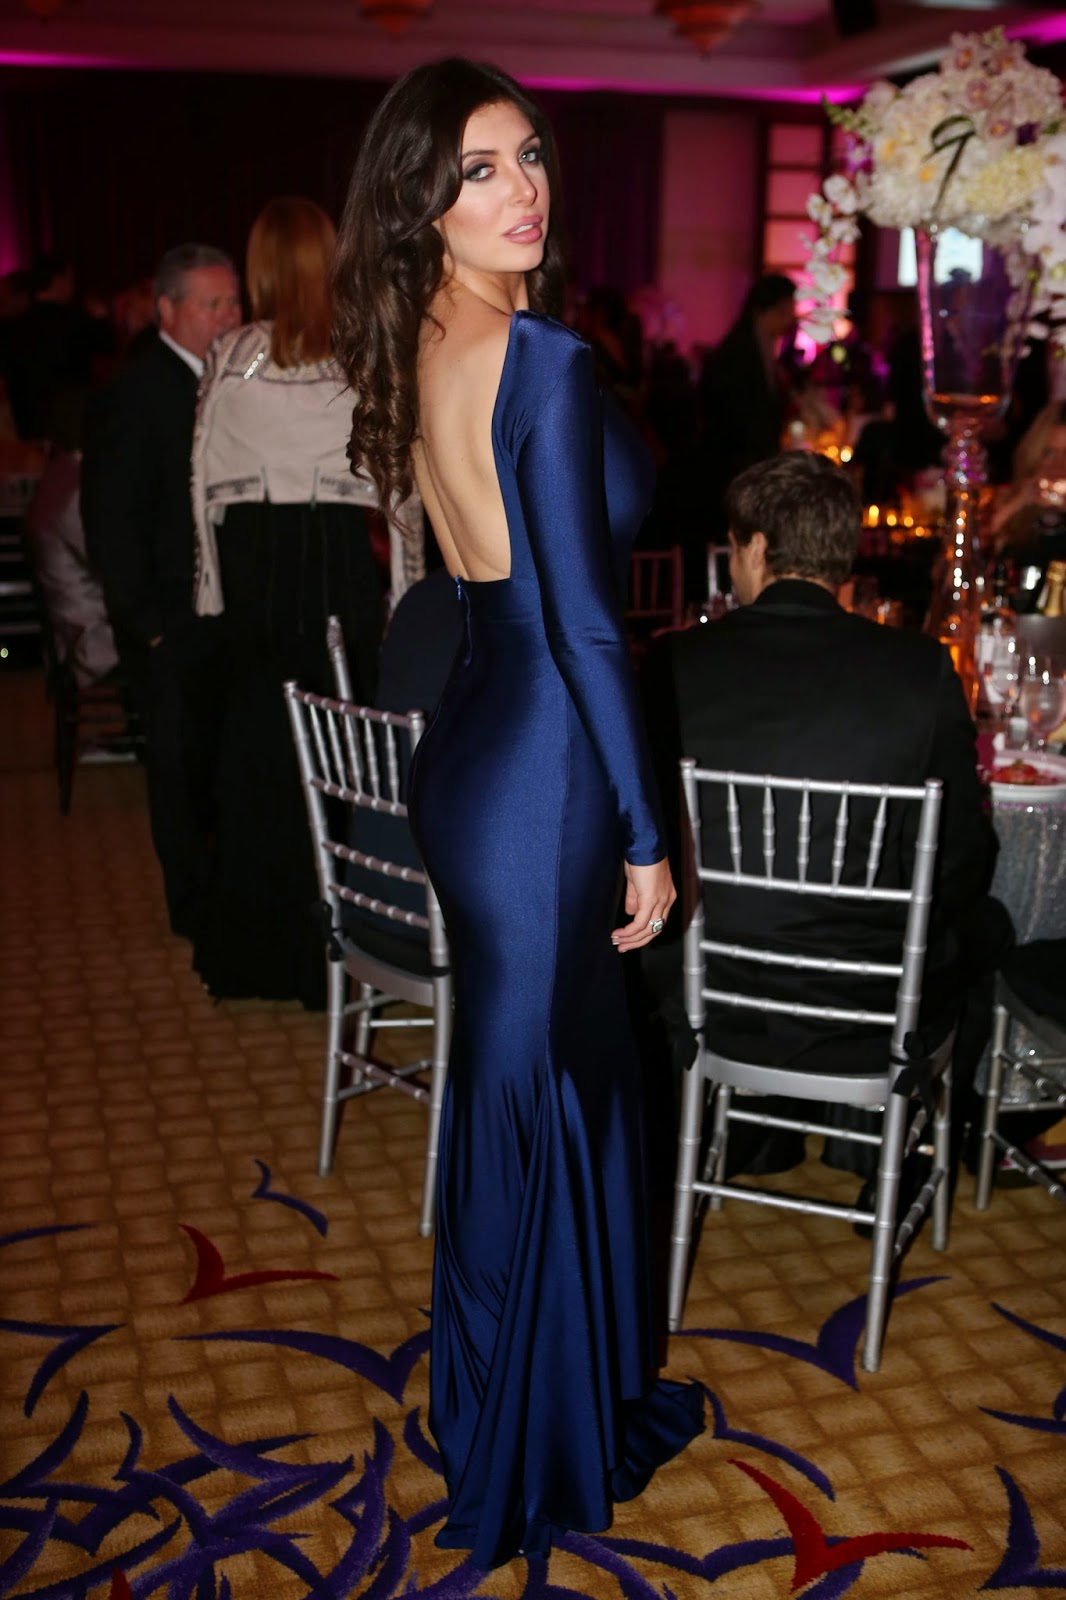 Celebrity Spotting: Brittny Gastineau at Women of Tomorrow Event in Miami